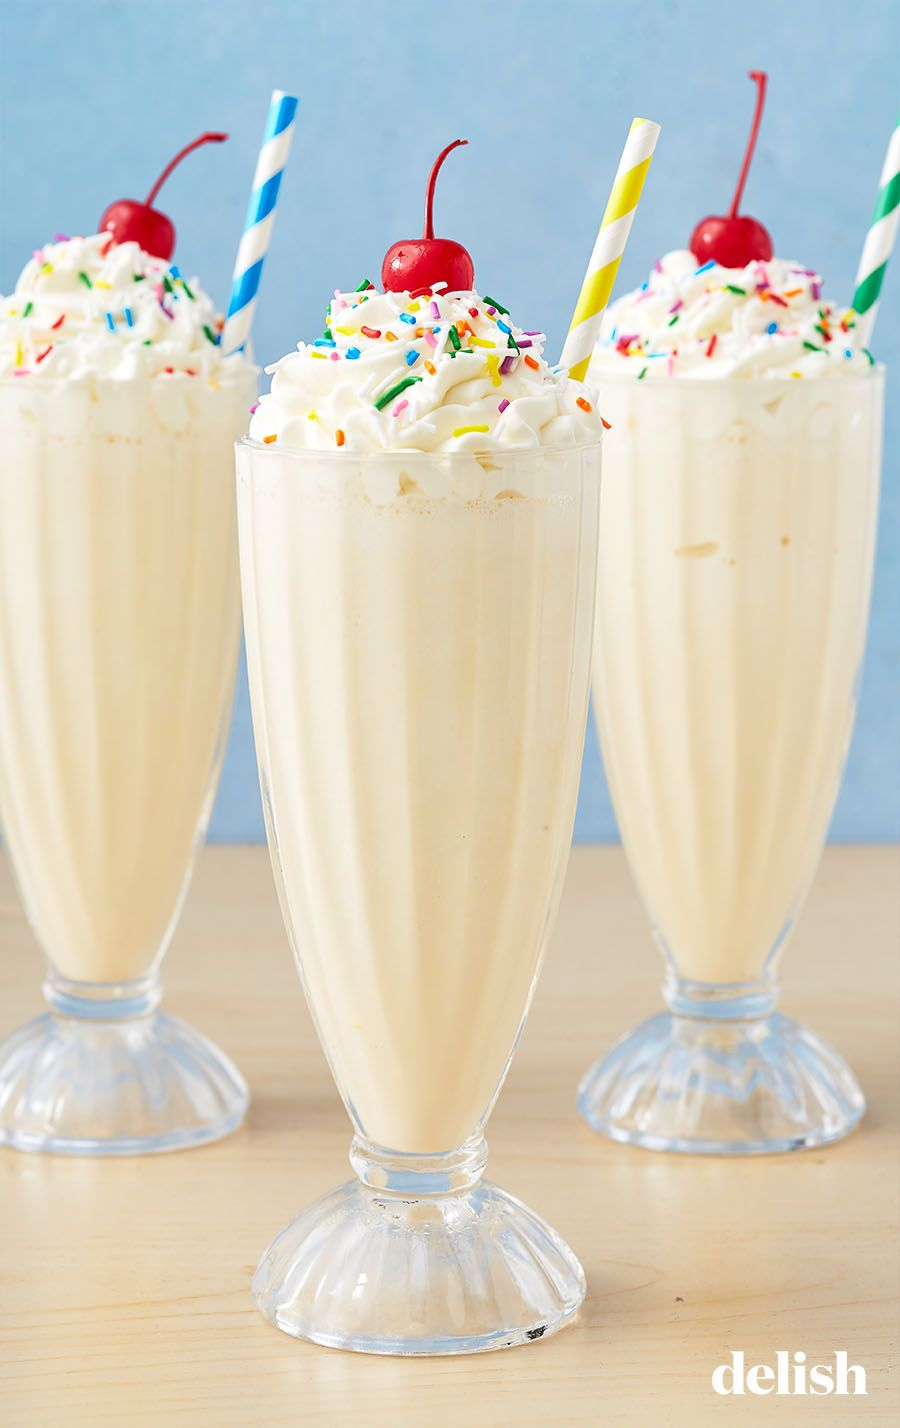 Have the perfect milkshake whenever you want with this